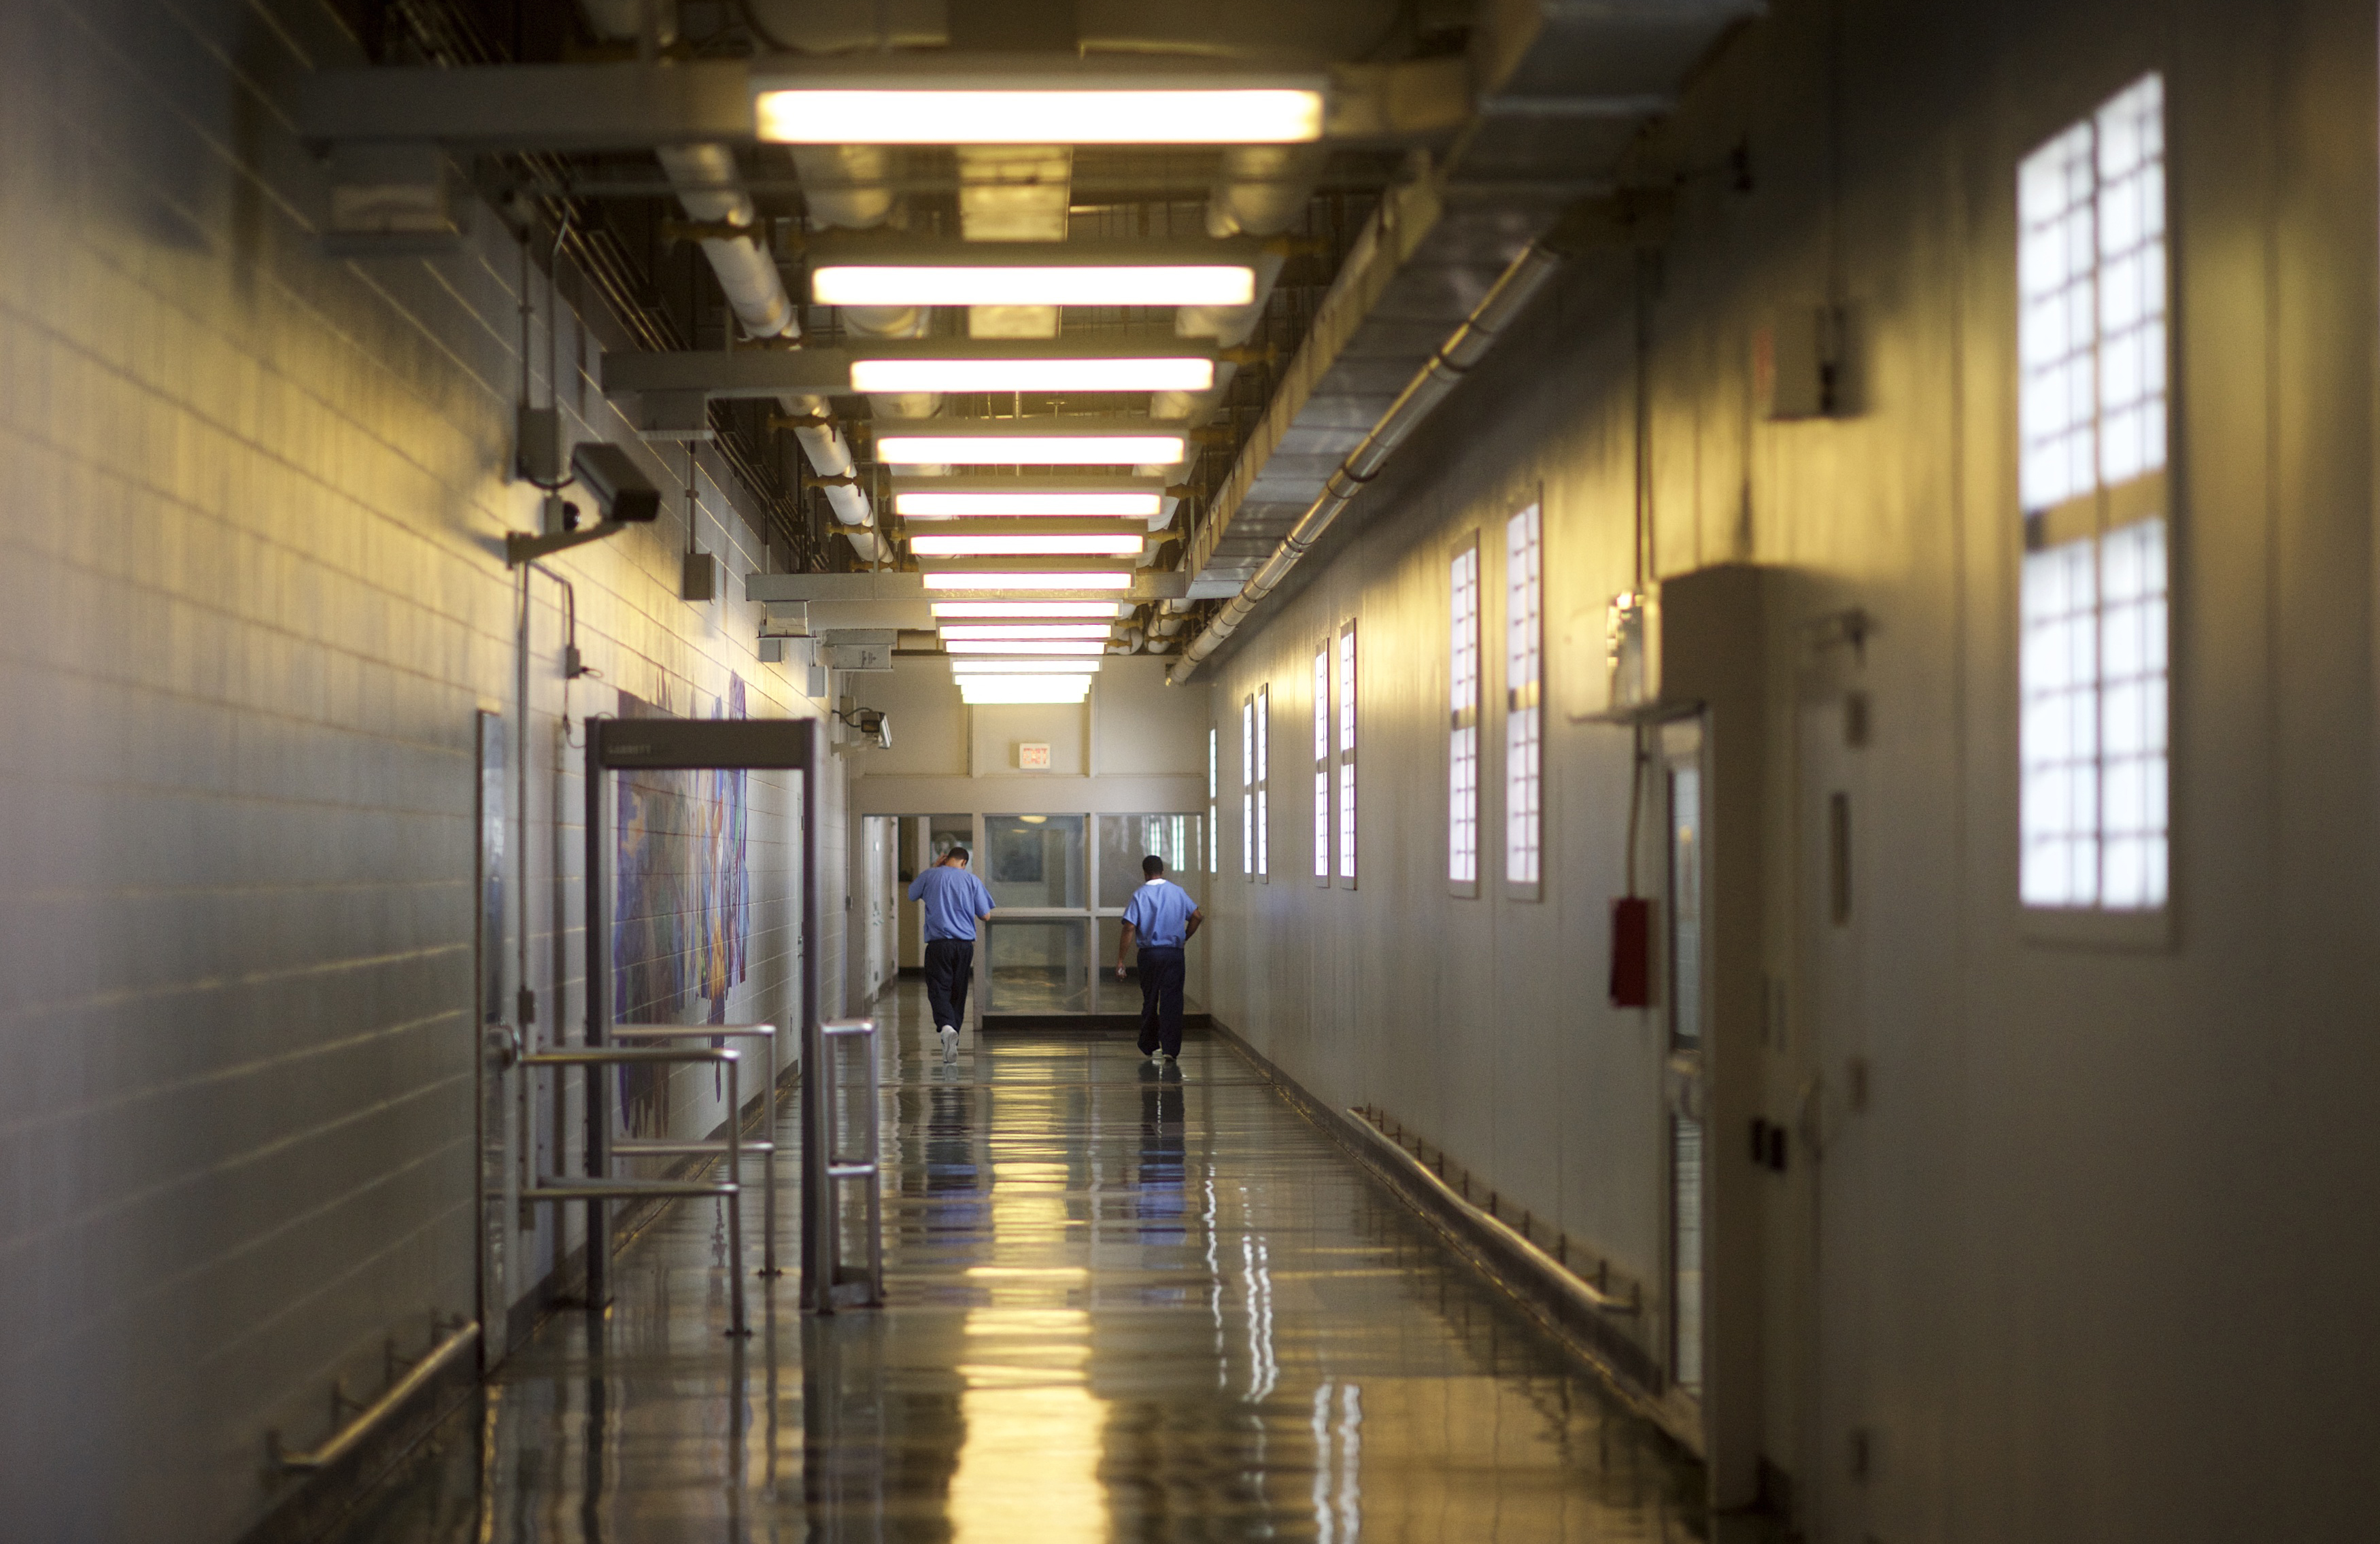 Inmates walk the hallways during a media tour of the Curran-Fromhold Correctional Facility in Philadelphia, Pennsylvania, August 7, 2015. REUTERS/Mark Makela/File Photo